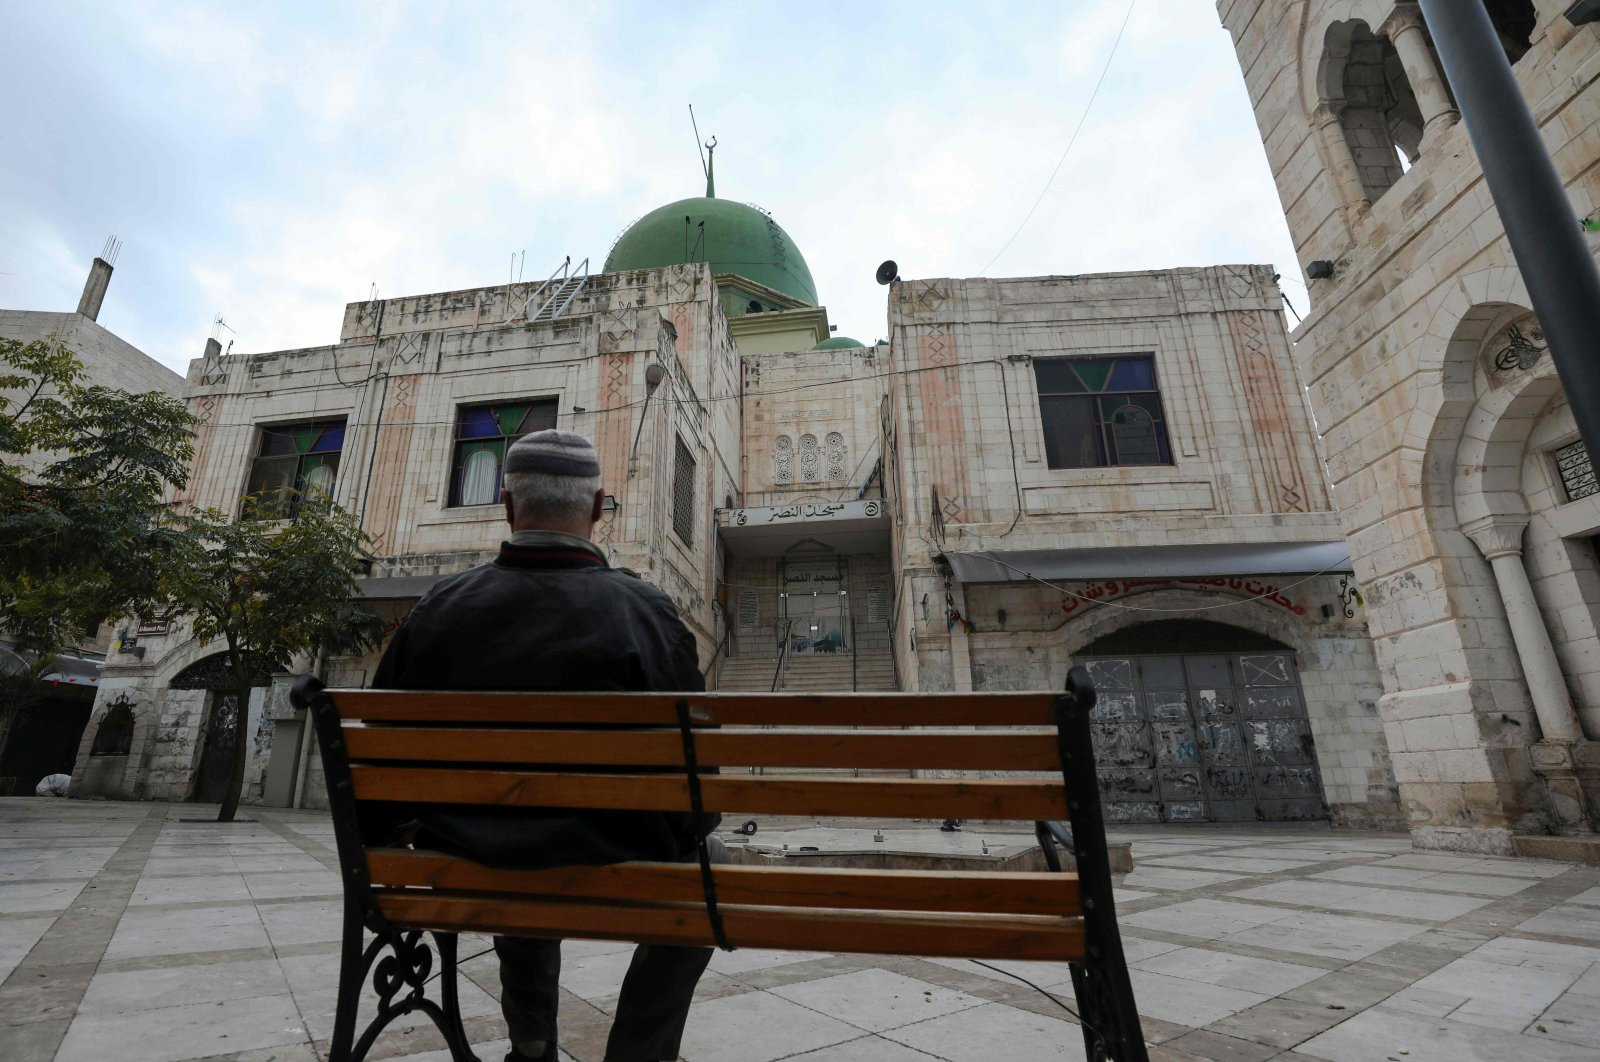 A Palestinian man sits on a bench on an empty street, as Palestinian authorities have announced a lockdown on weekends to curb the spread of COVID-19, in the occupied West Bank city of Nablus, Palestine, Nov. 27, 2020. (AFP Photo)